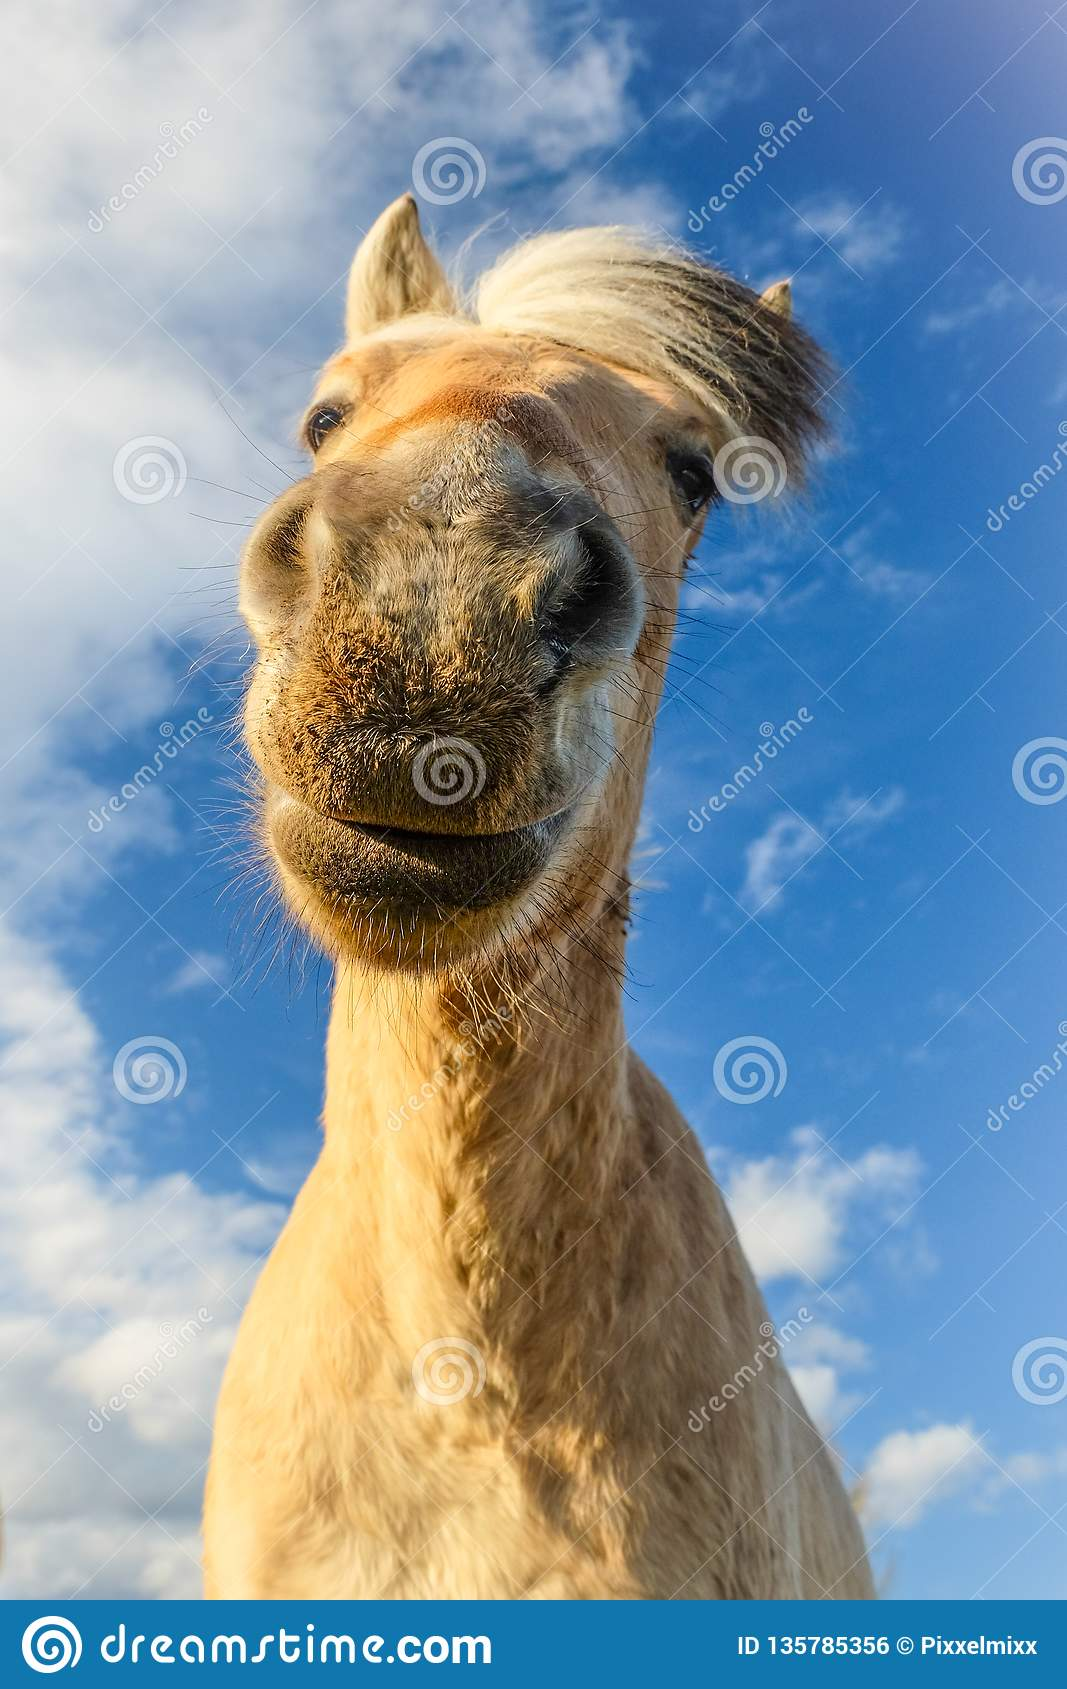 Funny Looking Horse Stock Photo Image Of Mammal Riding 135785356